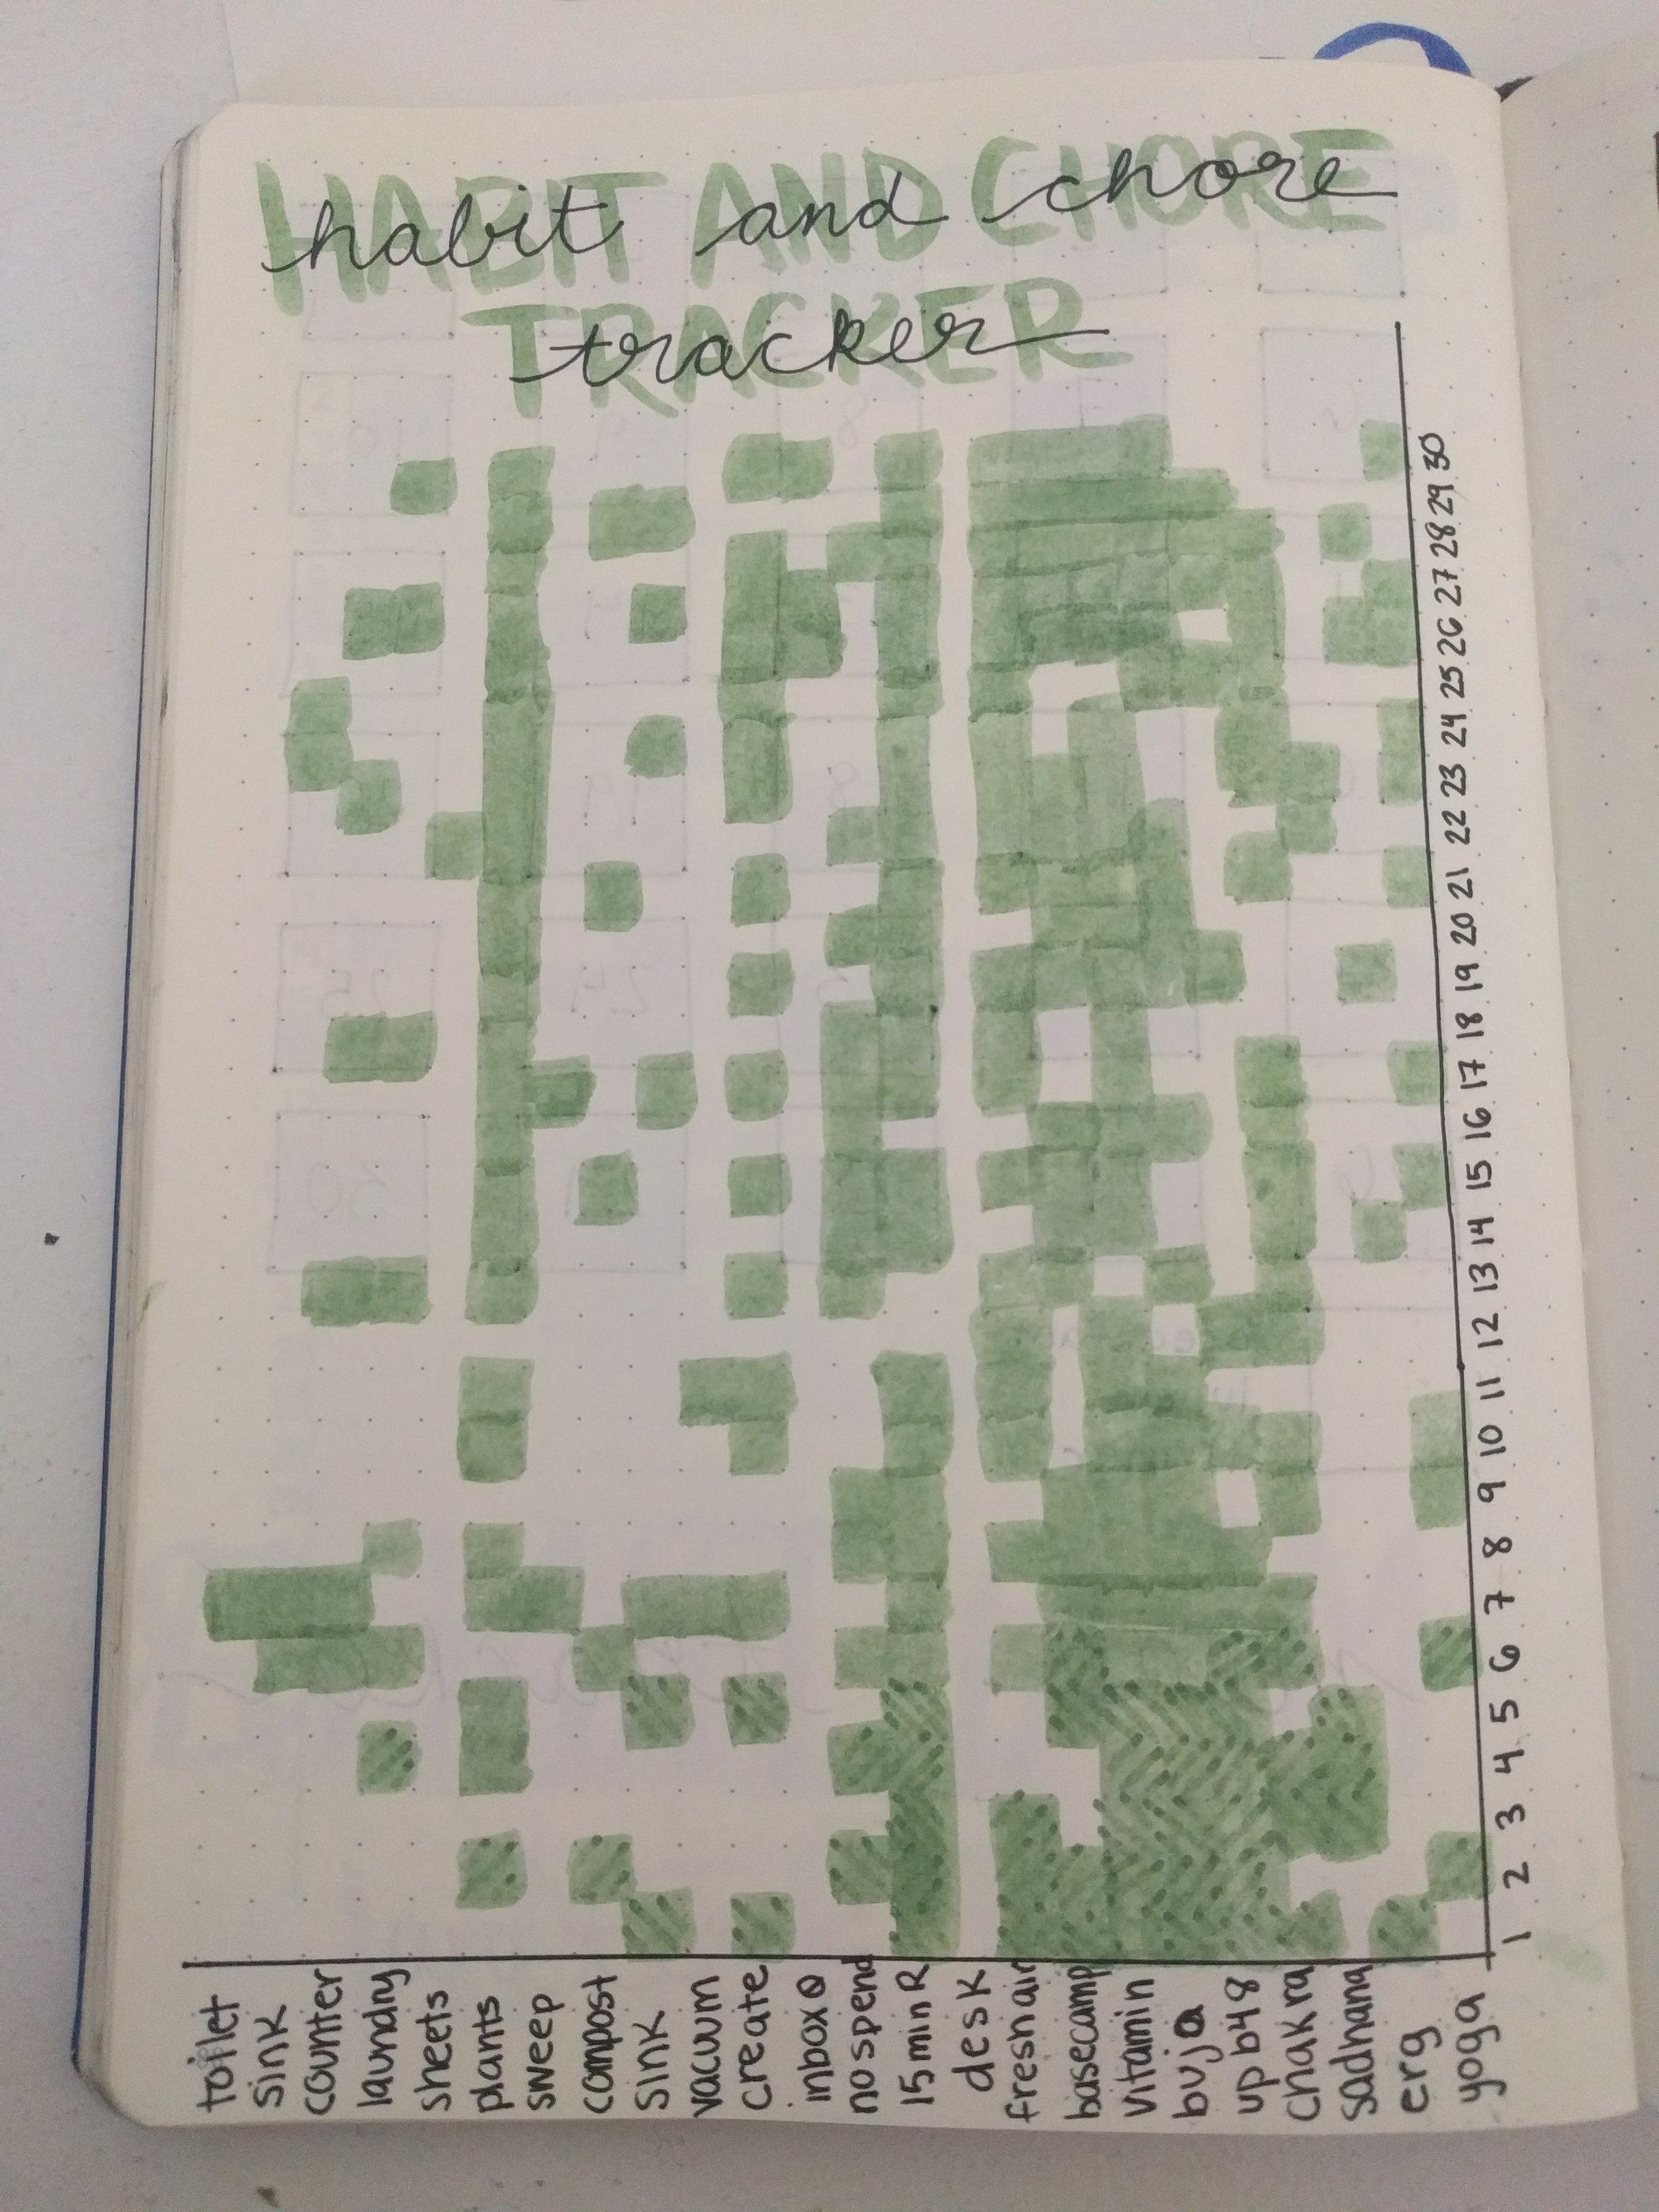 This mega tracker combines my habits and a cleaning chart, but ended up being too small to be practical.